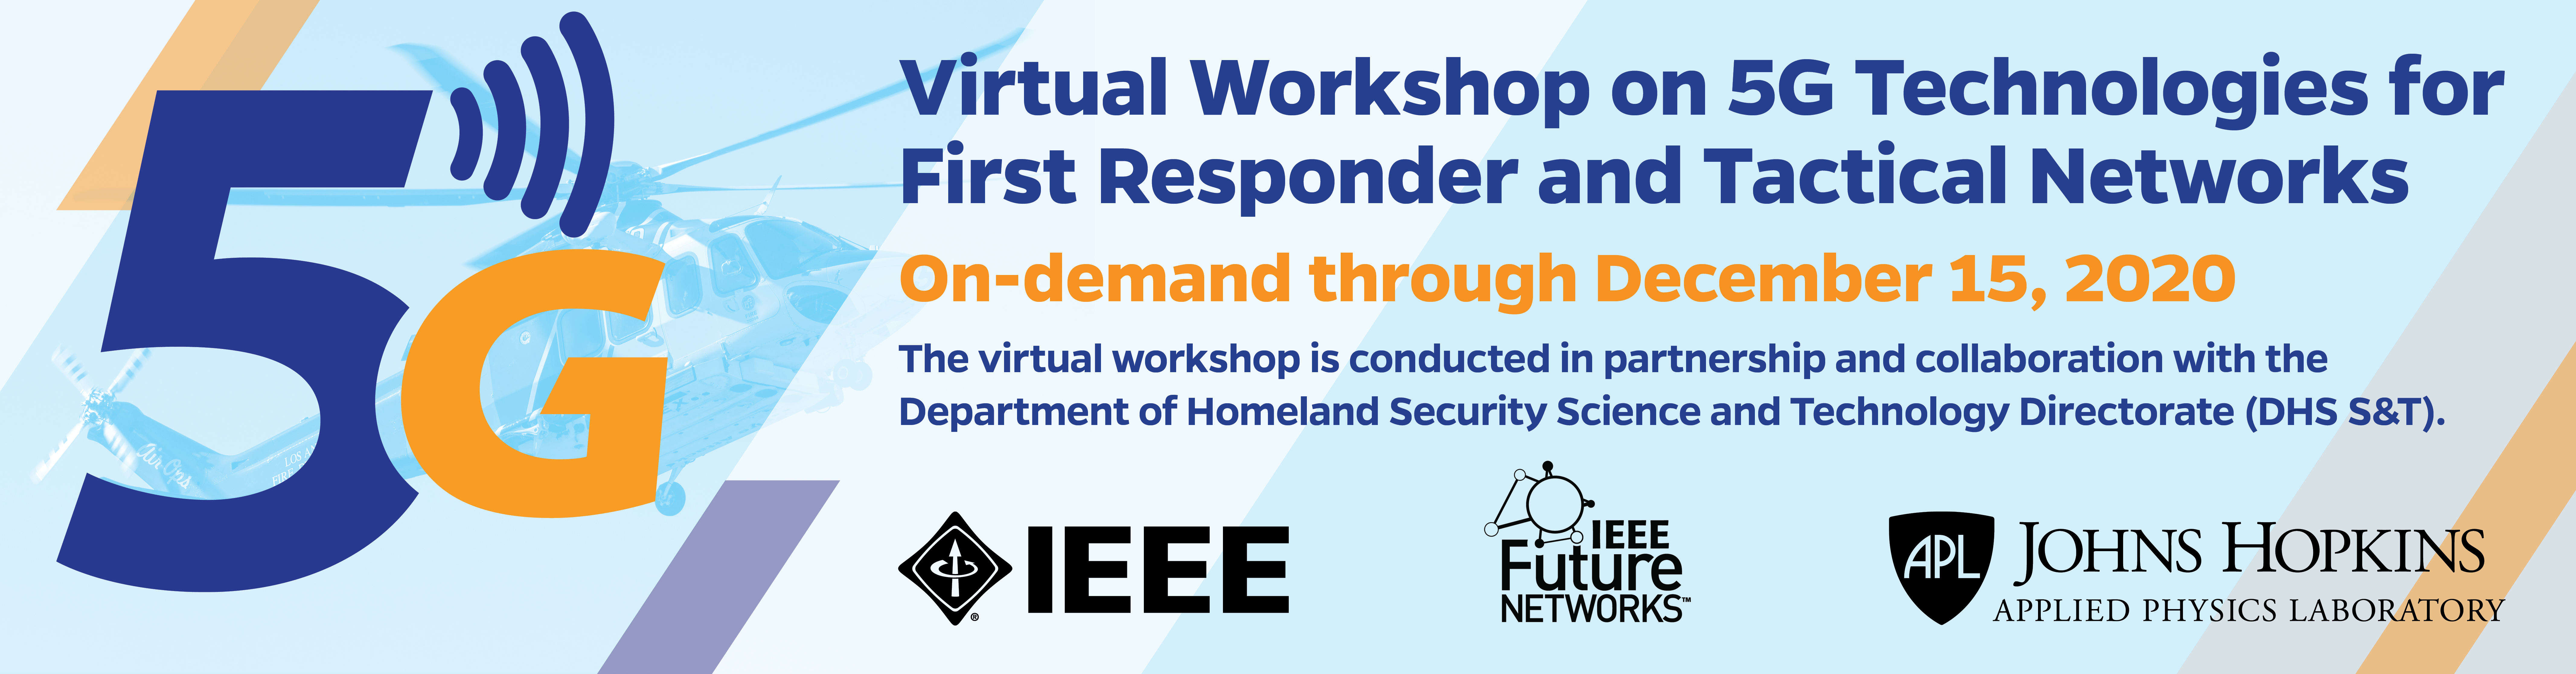 5G First Responder and Tactical Networks Workshop